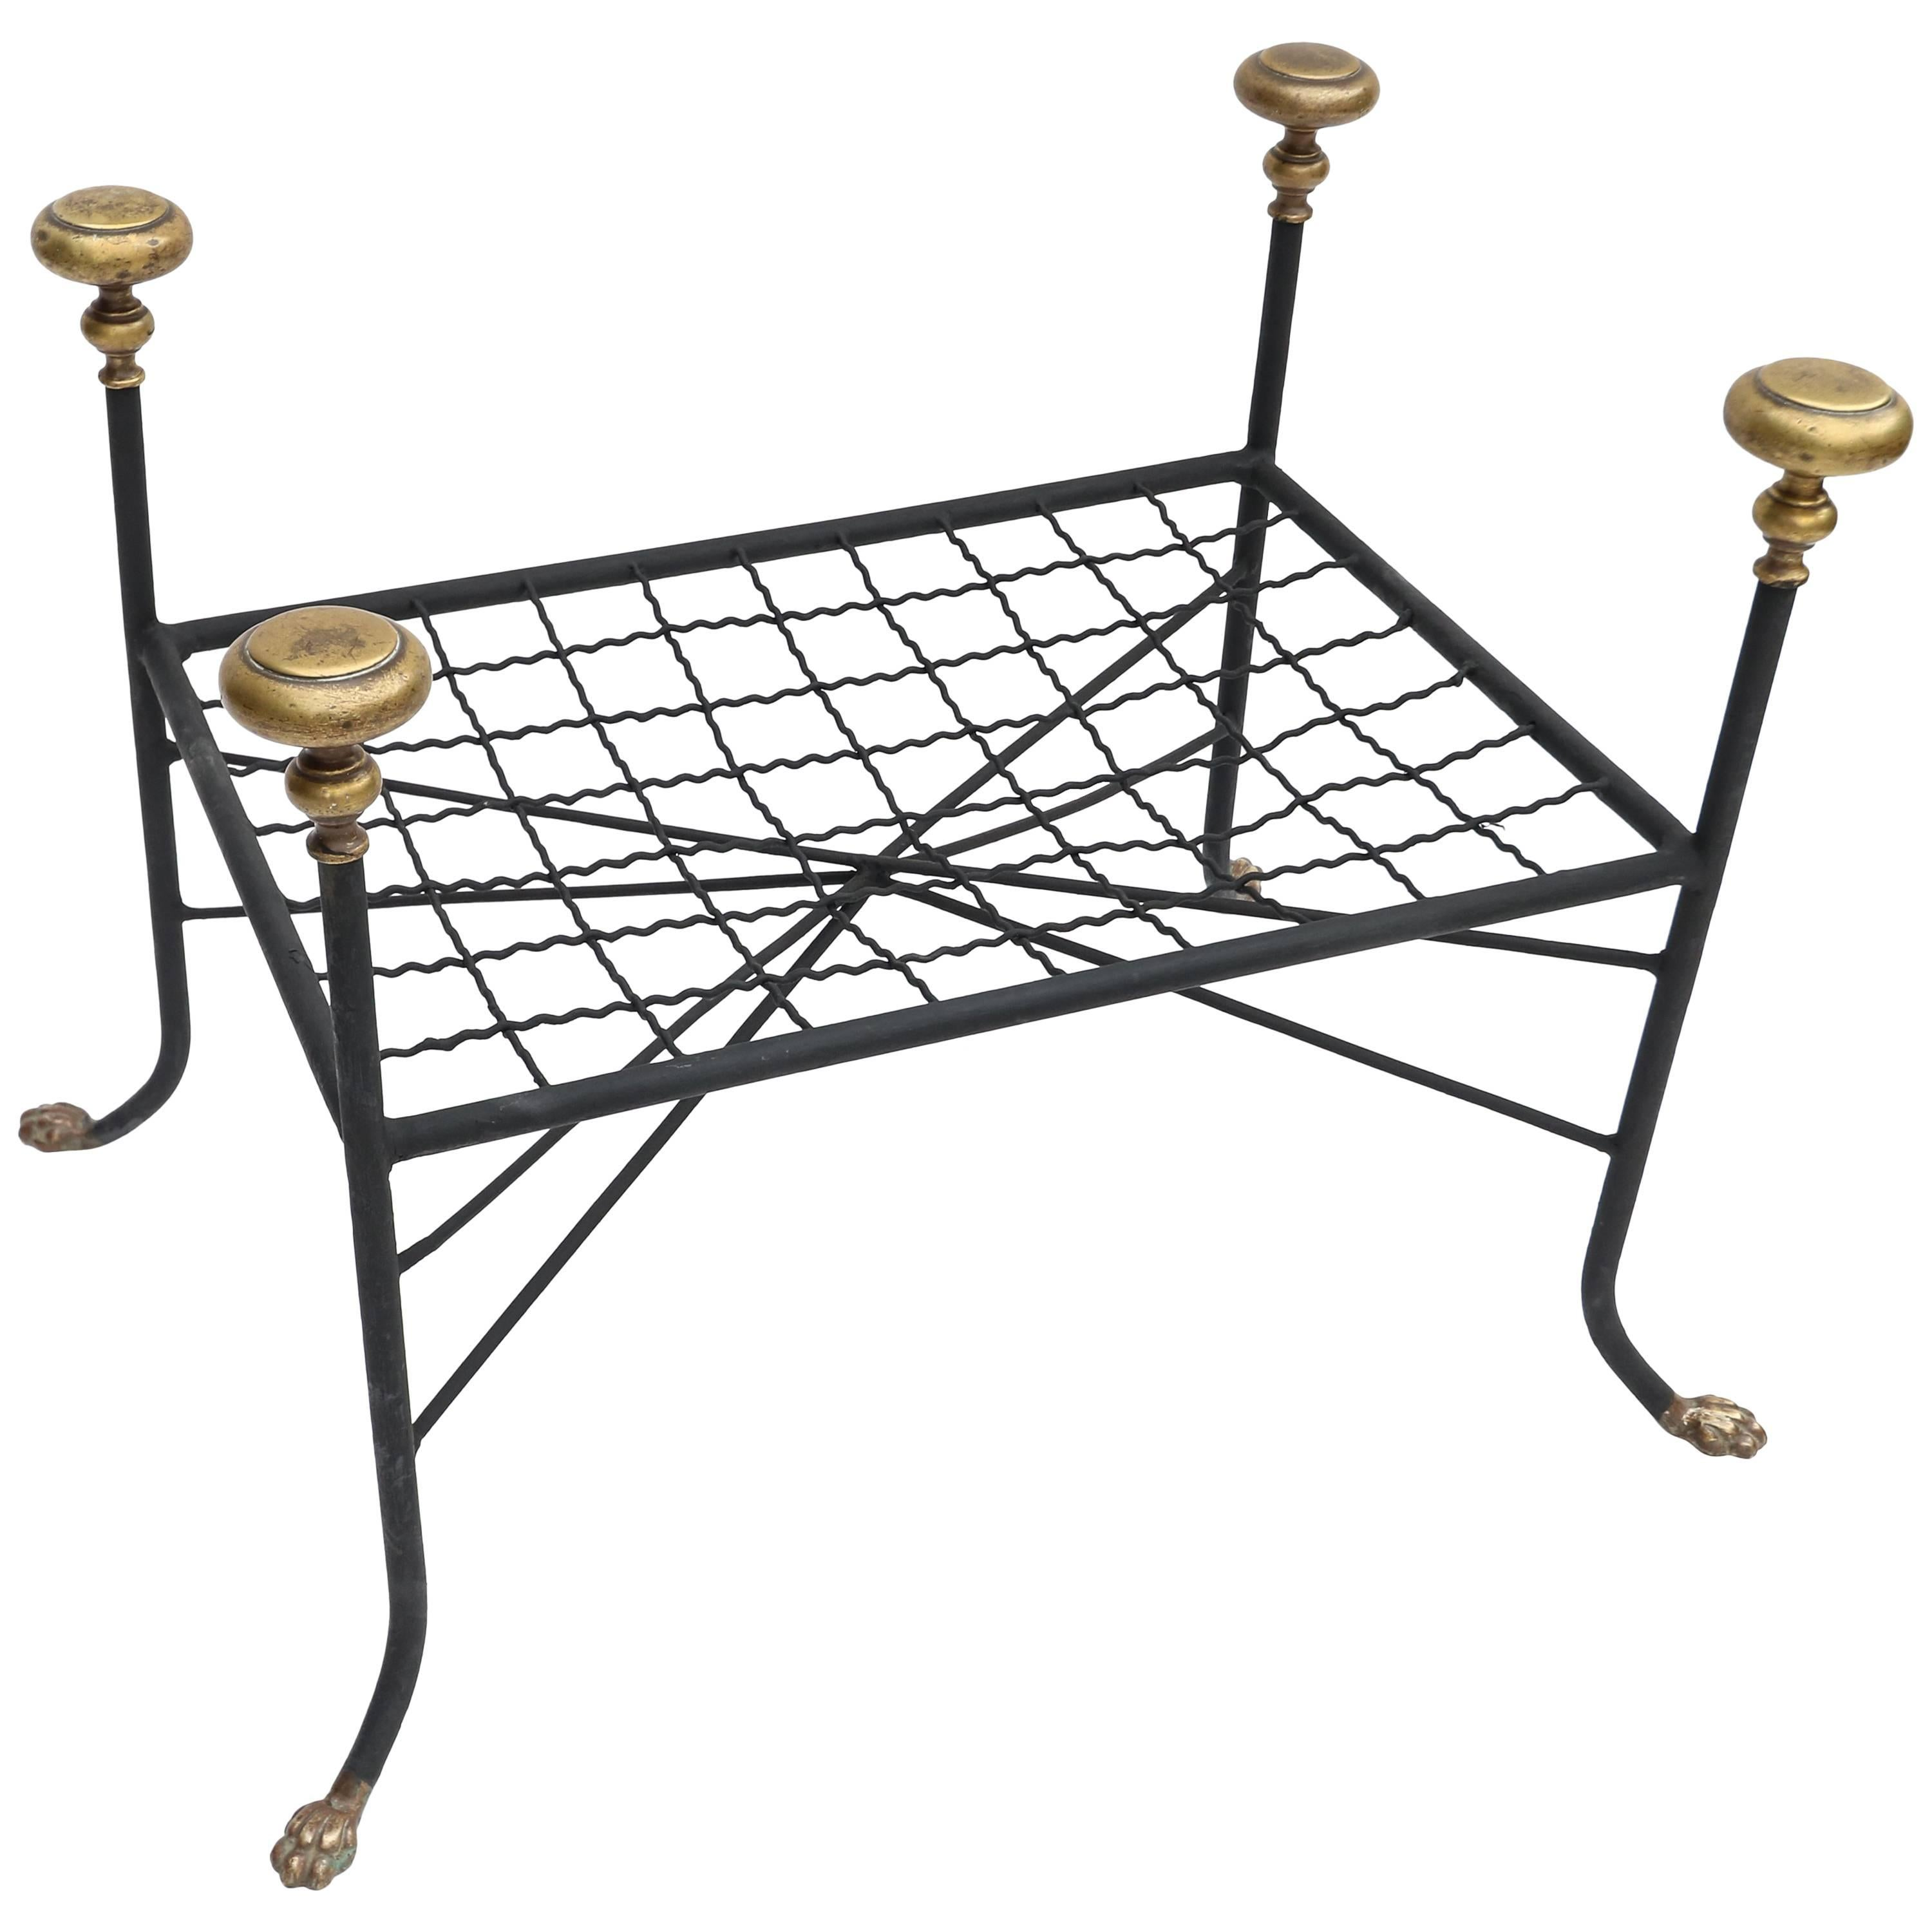 Black Metal Bench or Stool with Brass Finials and Claw Feet